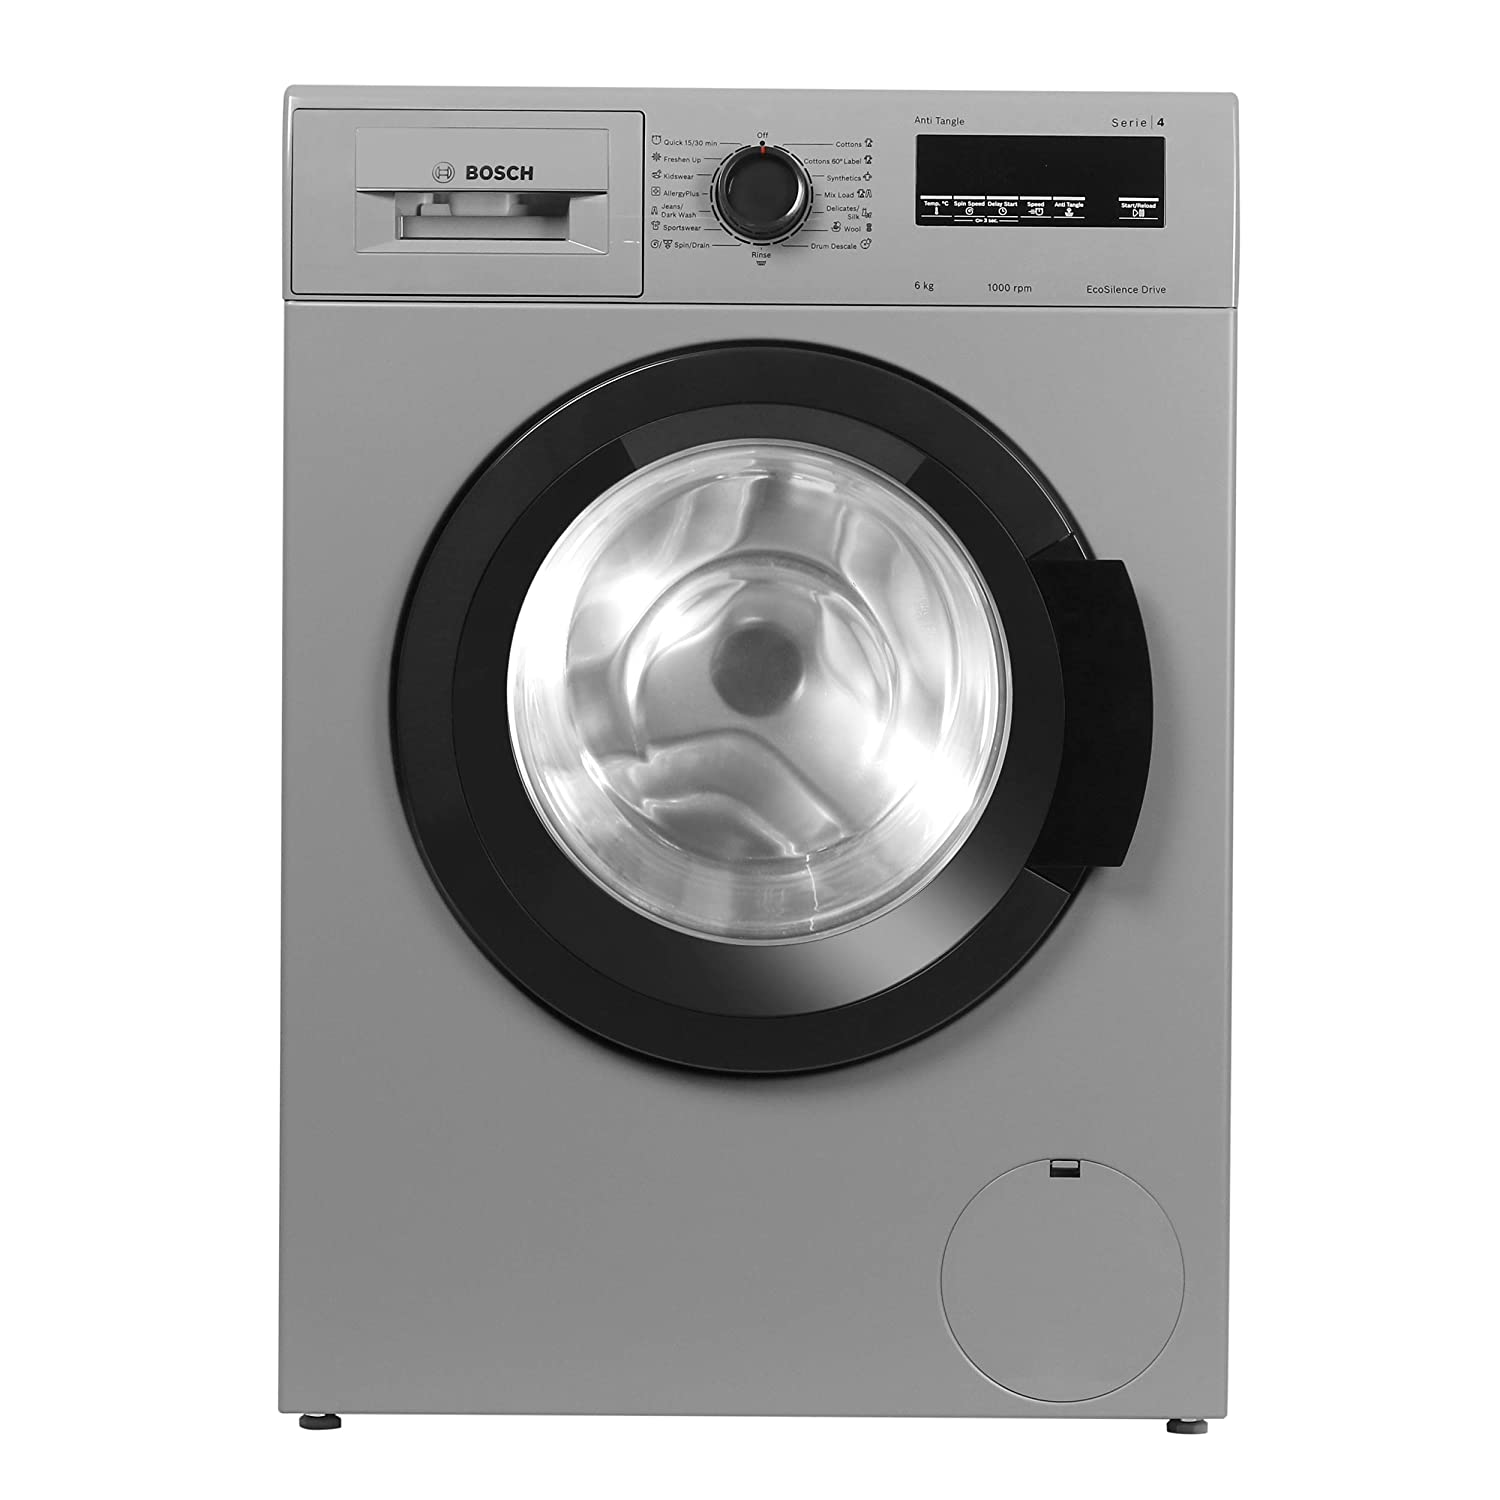 Bosch 6 kg 5 Star Inverter Fully Automatic Front Loading Washing Machine